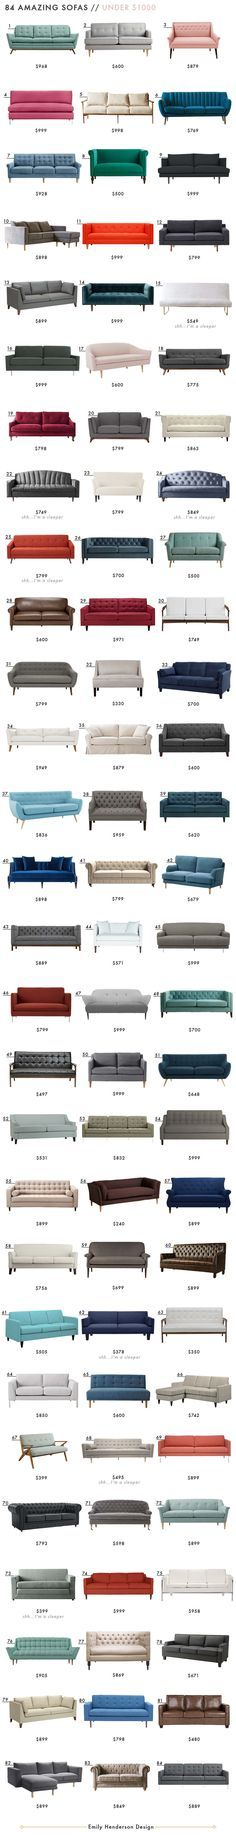 84 Affordable Amazing Sofas Under $1000